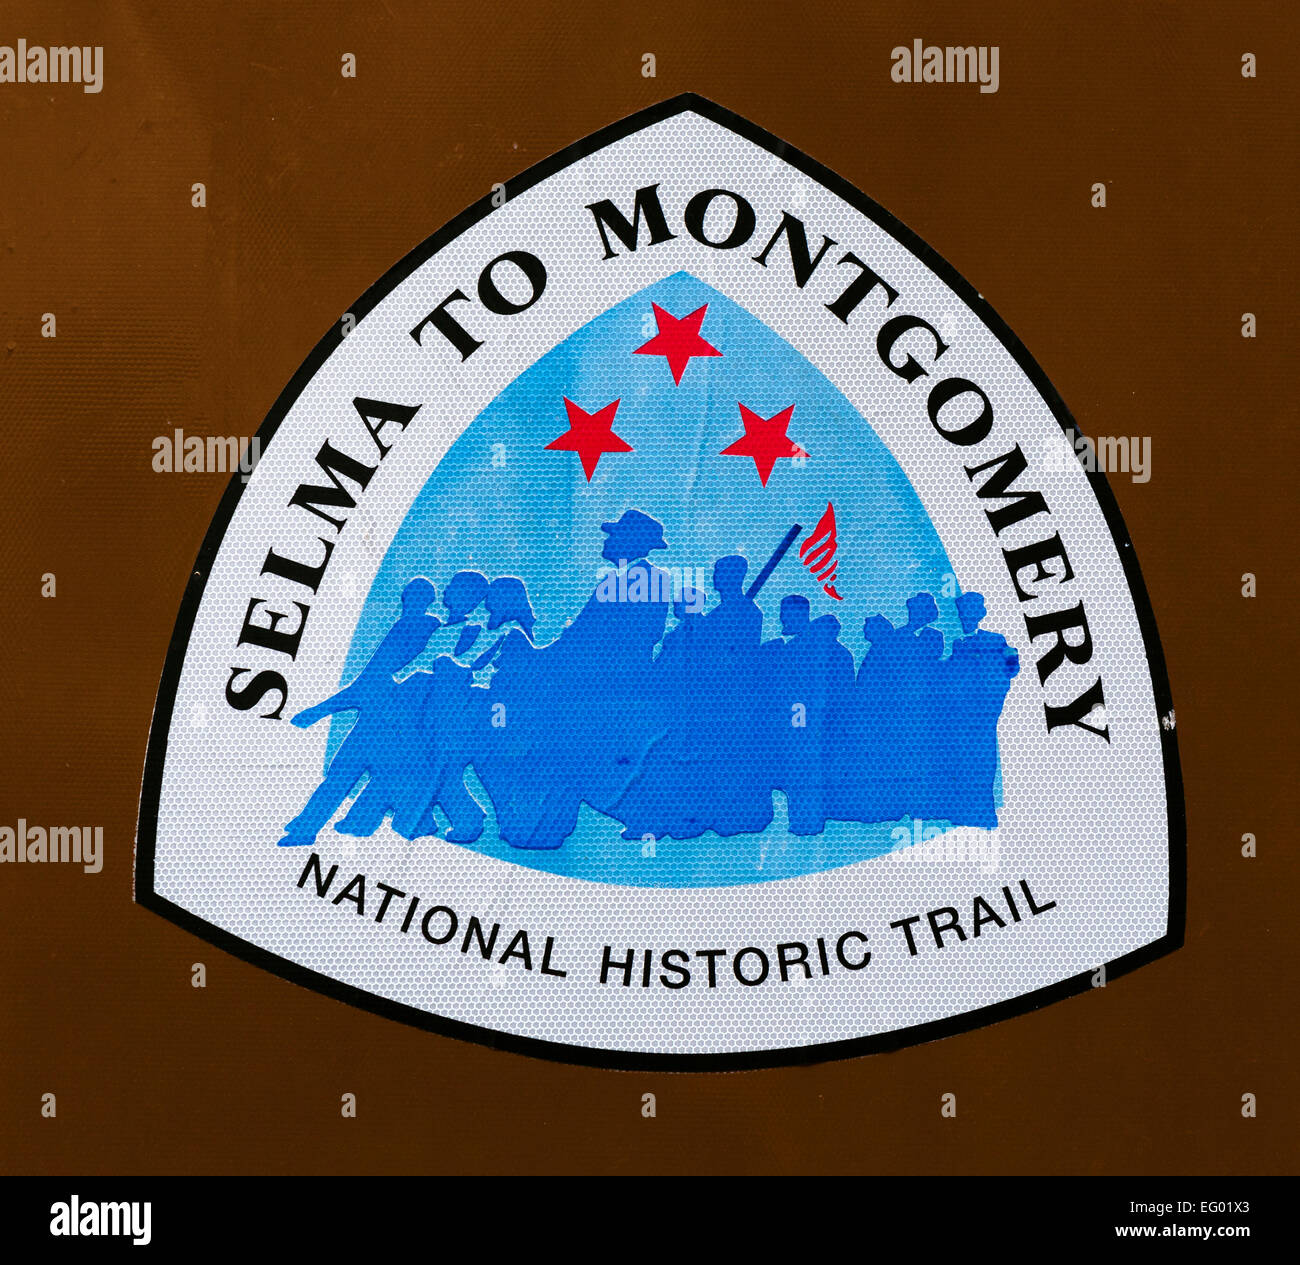 Road sign for historic trail of Selma to Montgomery Voting Rights march, Selma, Alabama, USA - Stock Image